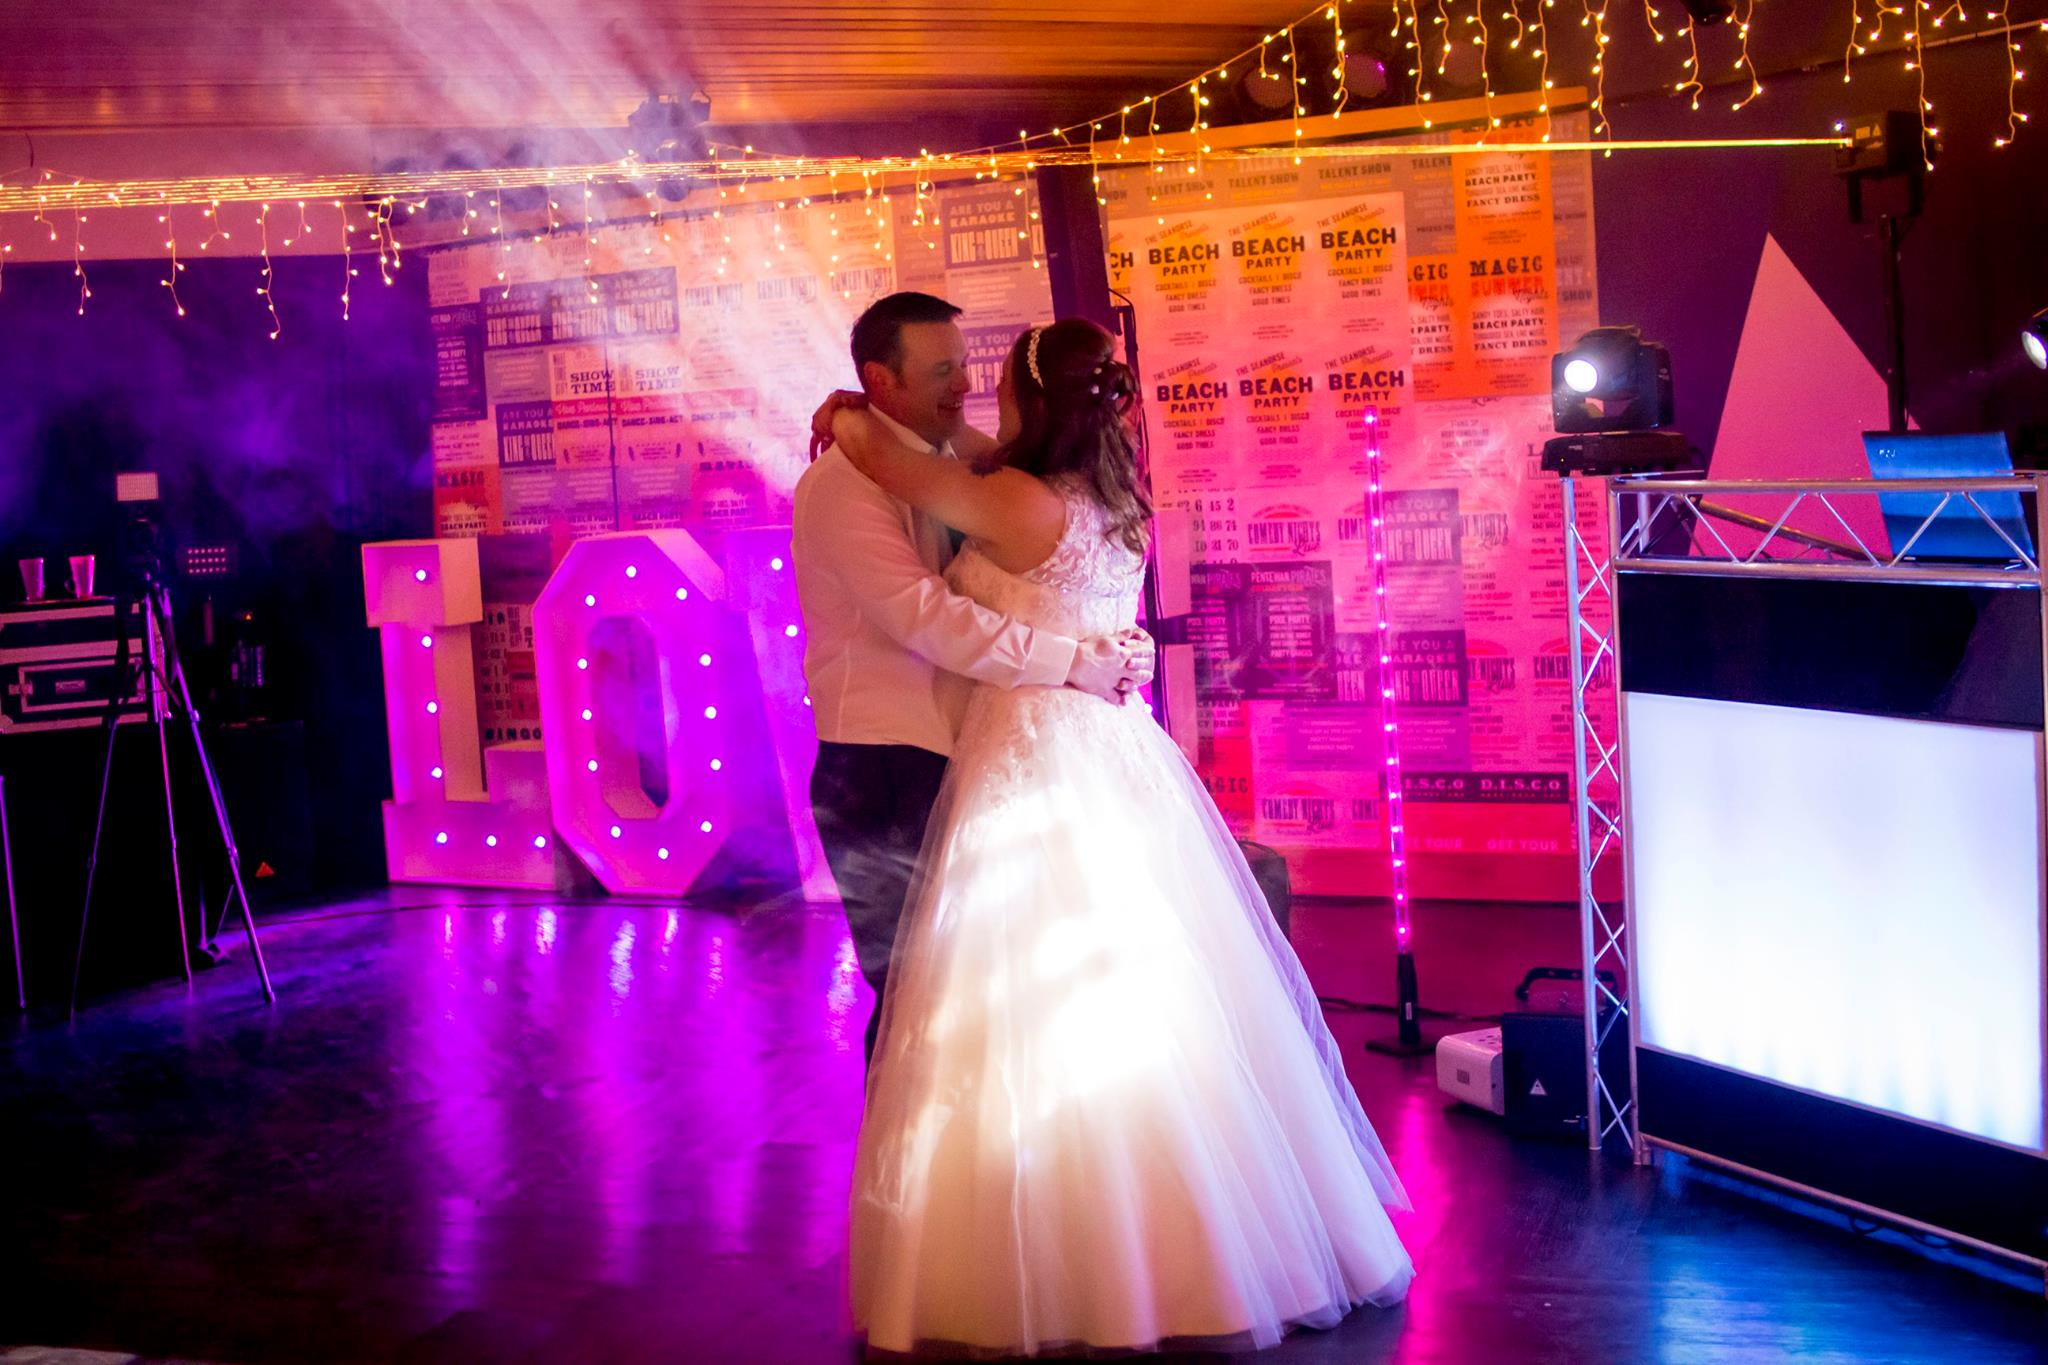 cornwall wedding disco dj photographer 14